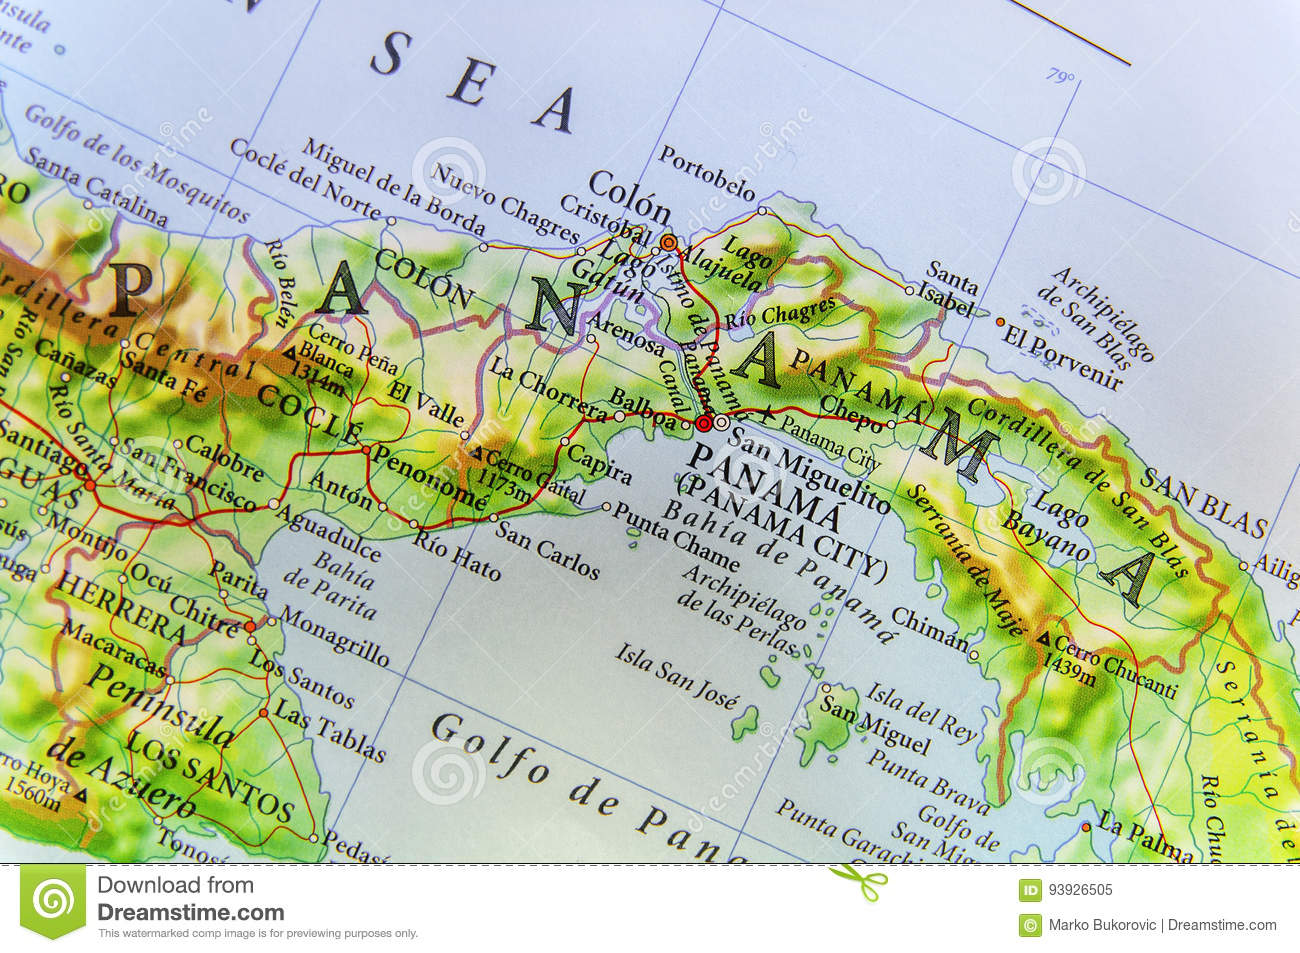 Geographic Map Of Country Panama And Panama City Stock Image - Image ...